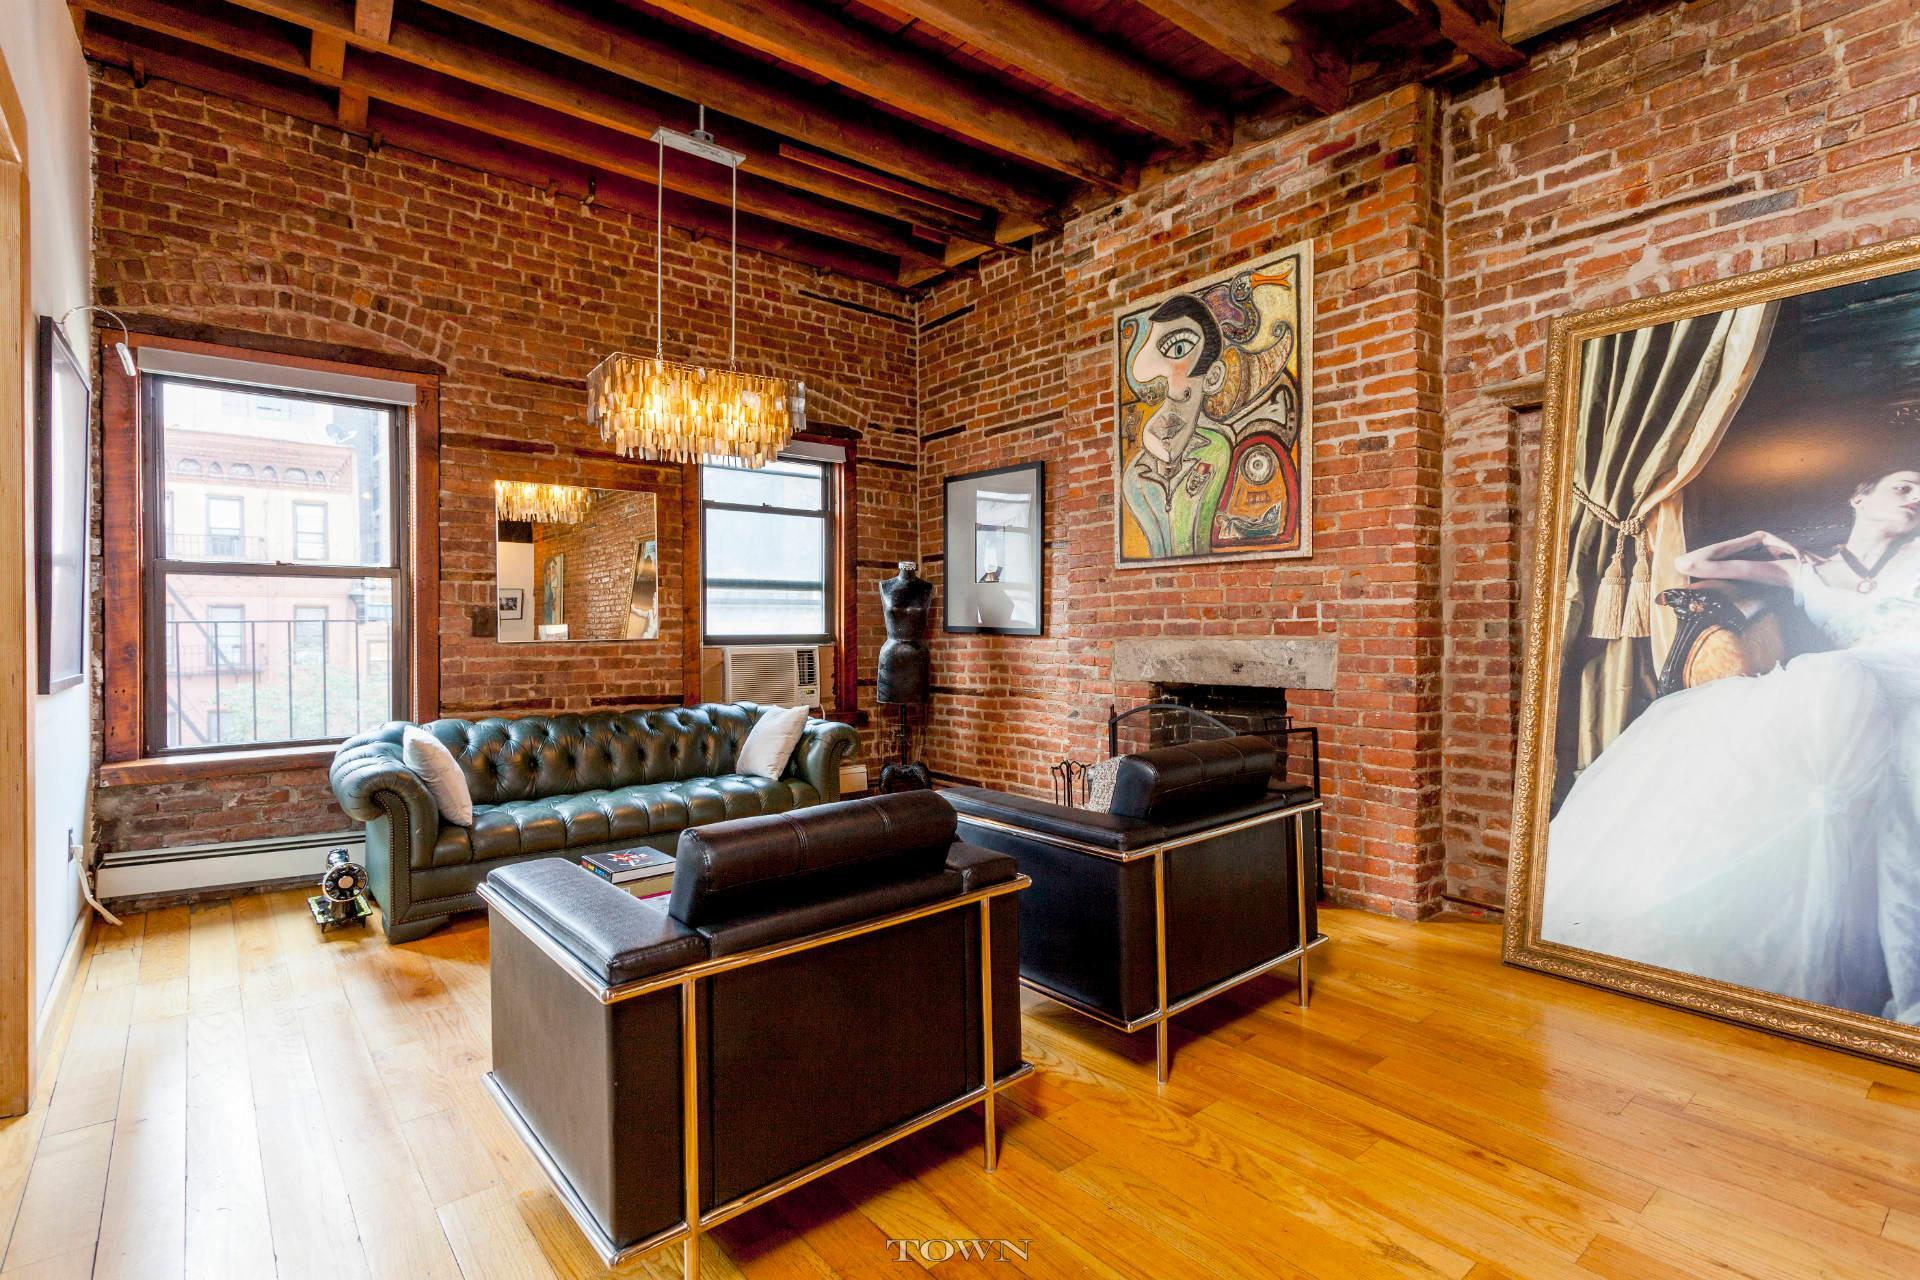 great garage shop ideas - A 32 Foot Long Living Room with Exposed Brick Dominates